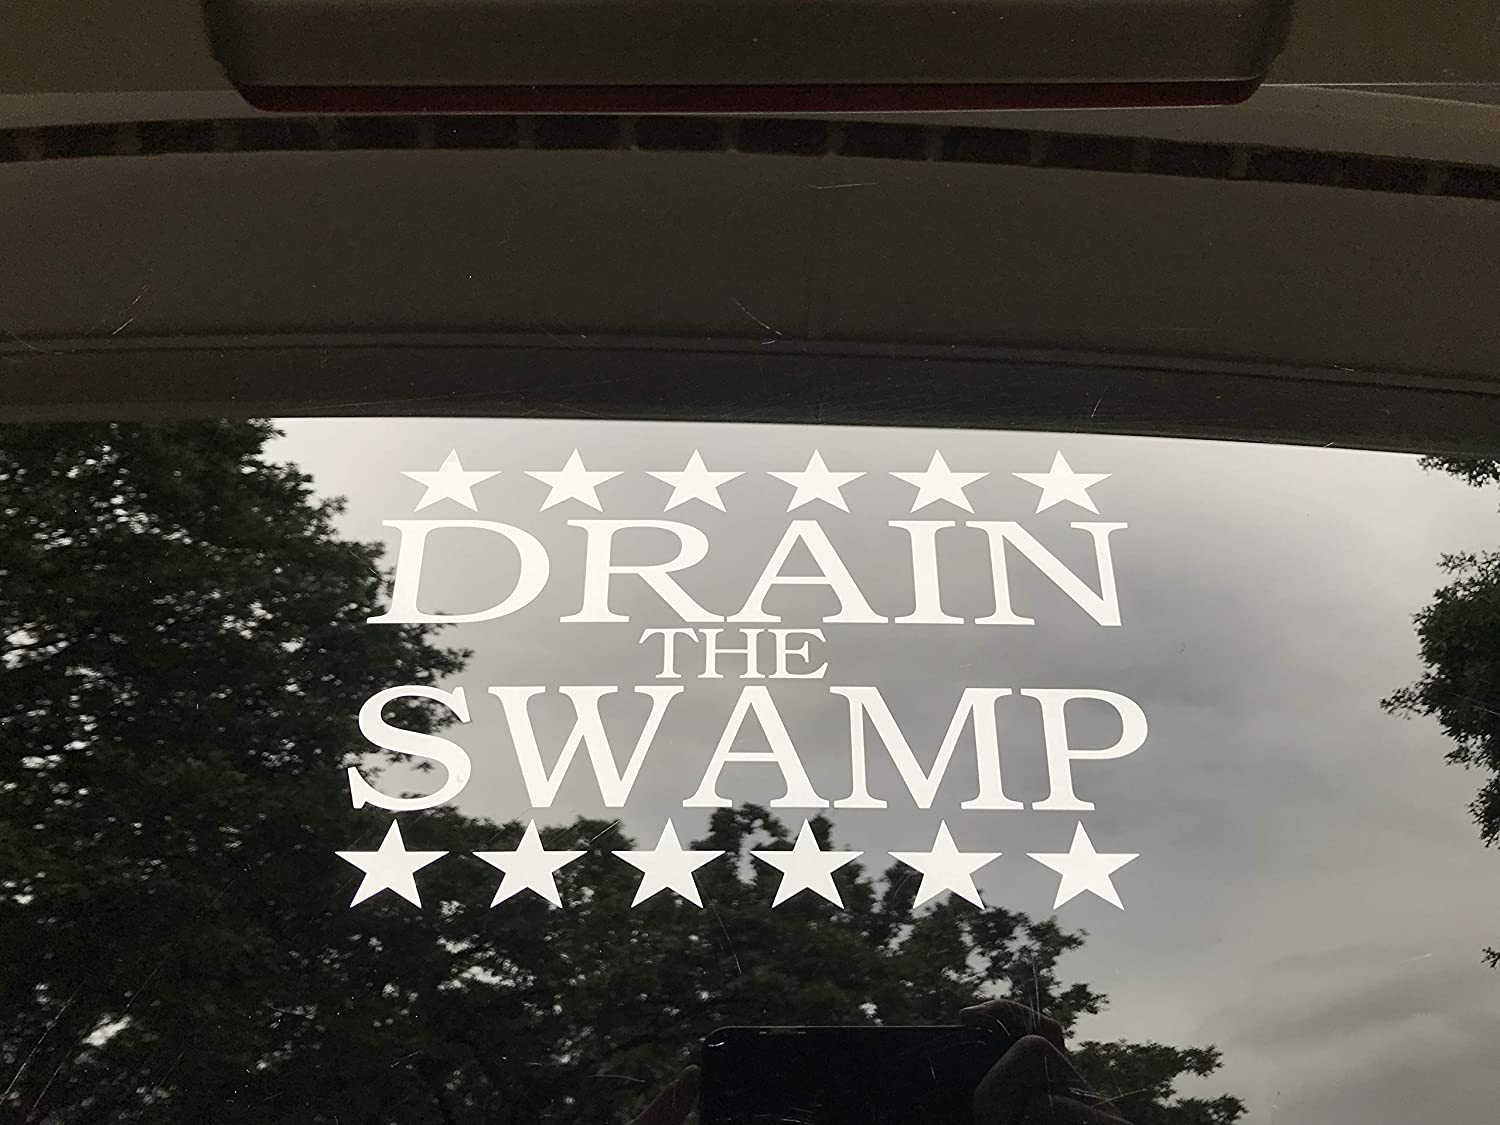 Drain The Swamp Sticker Donald Trump President 2016 Campaign MakeAmericaGreat